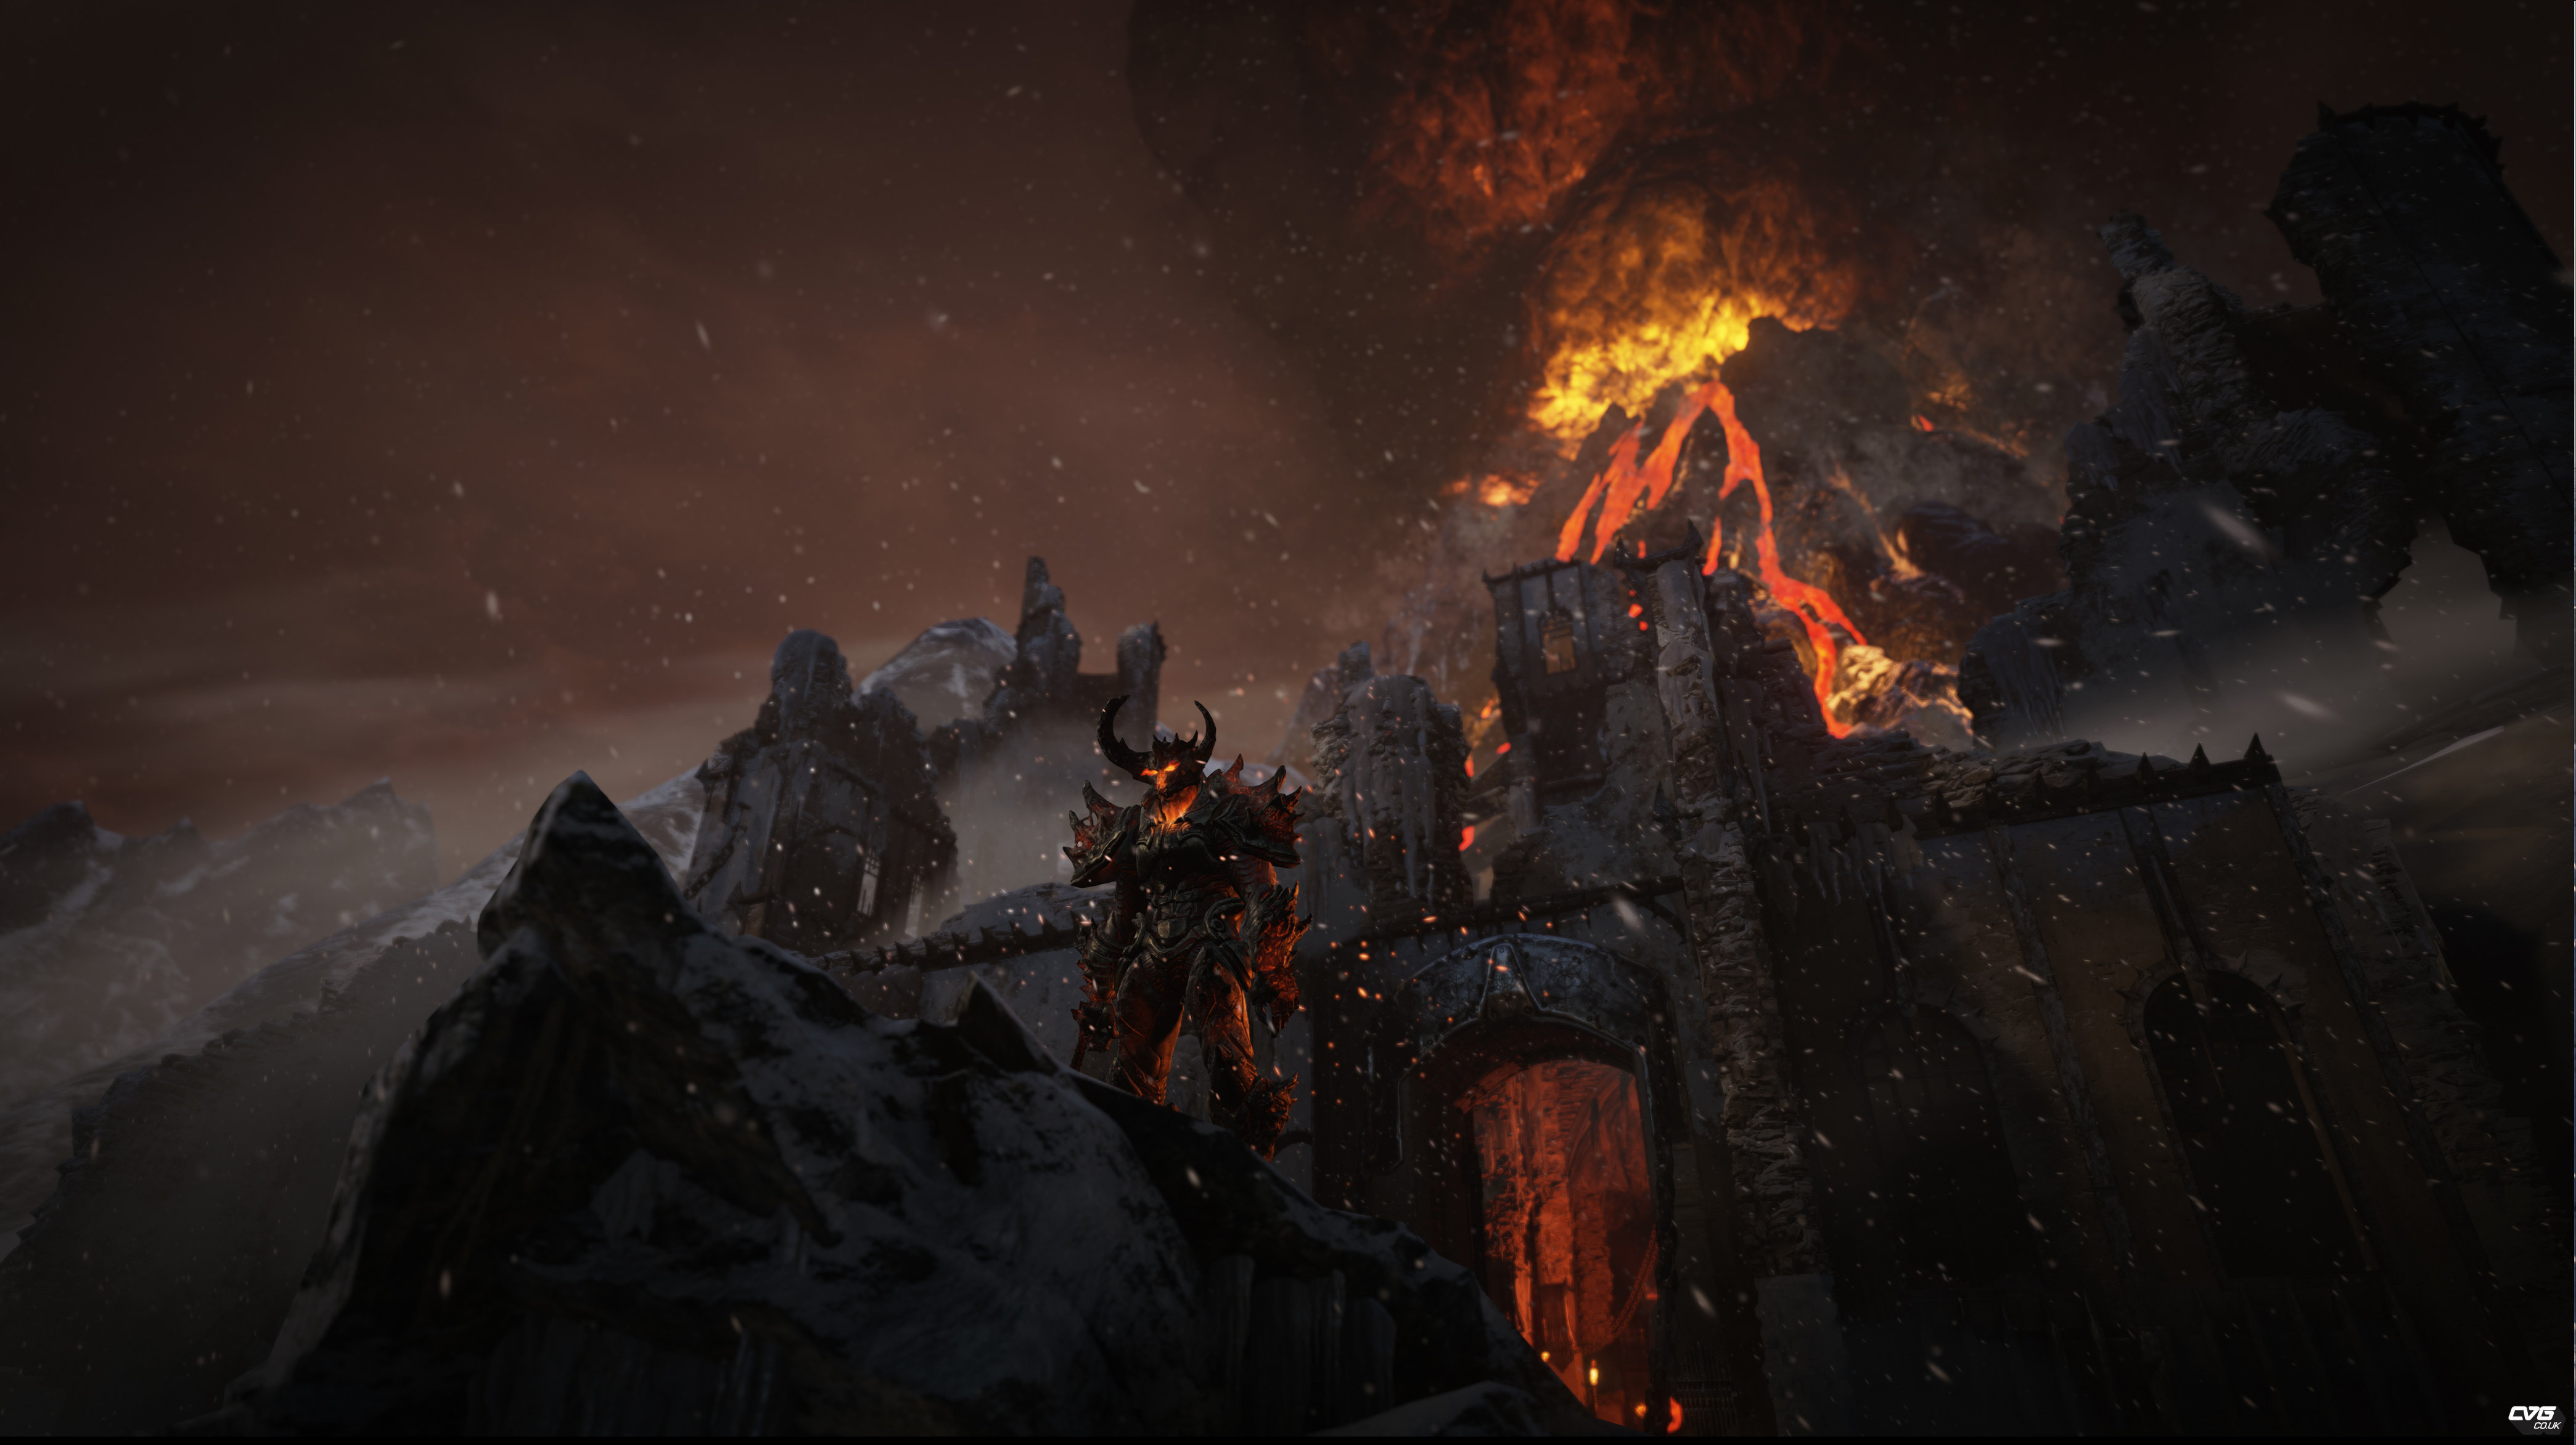 Unreal engine 4 gdc feature techdemo screengrabs unveil - Fantasy world wallpaper engine ...